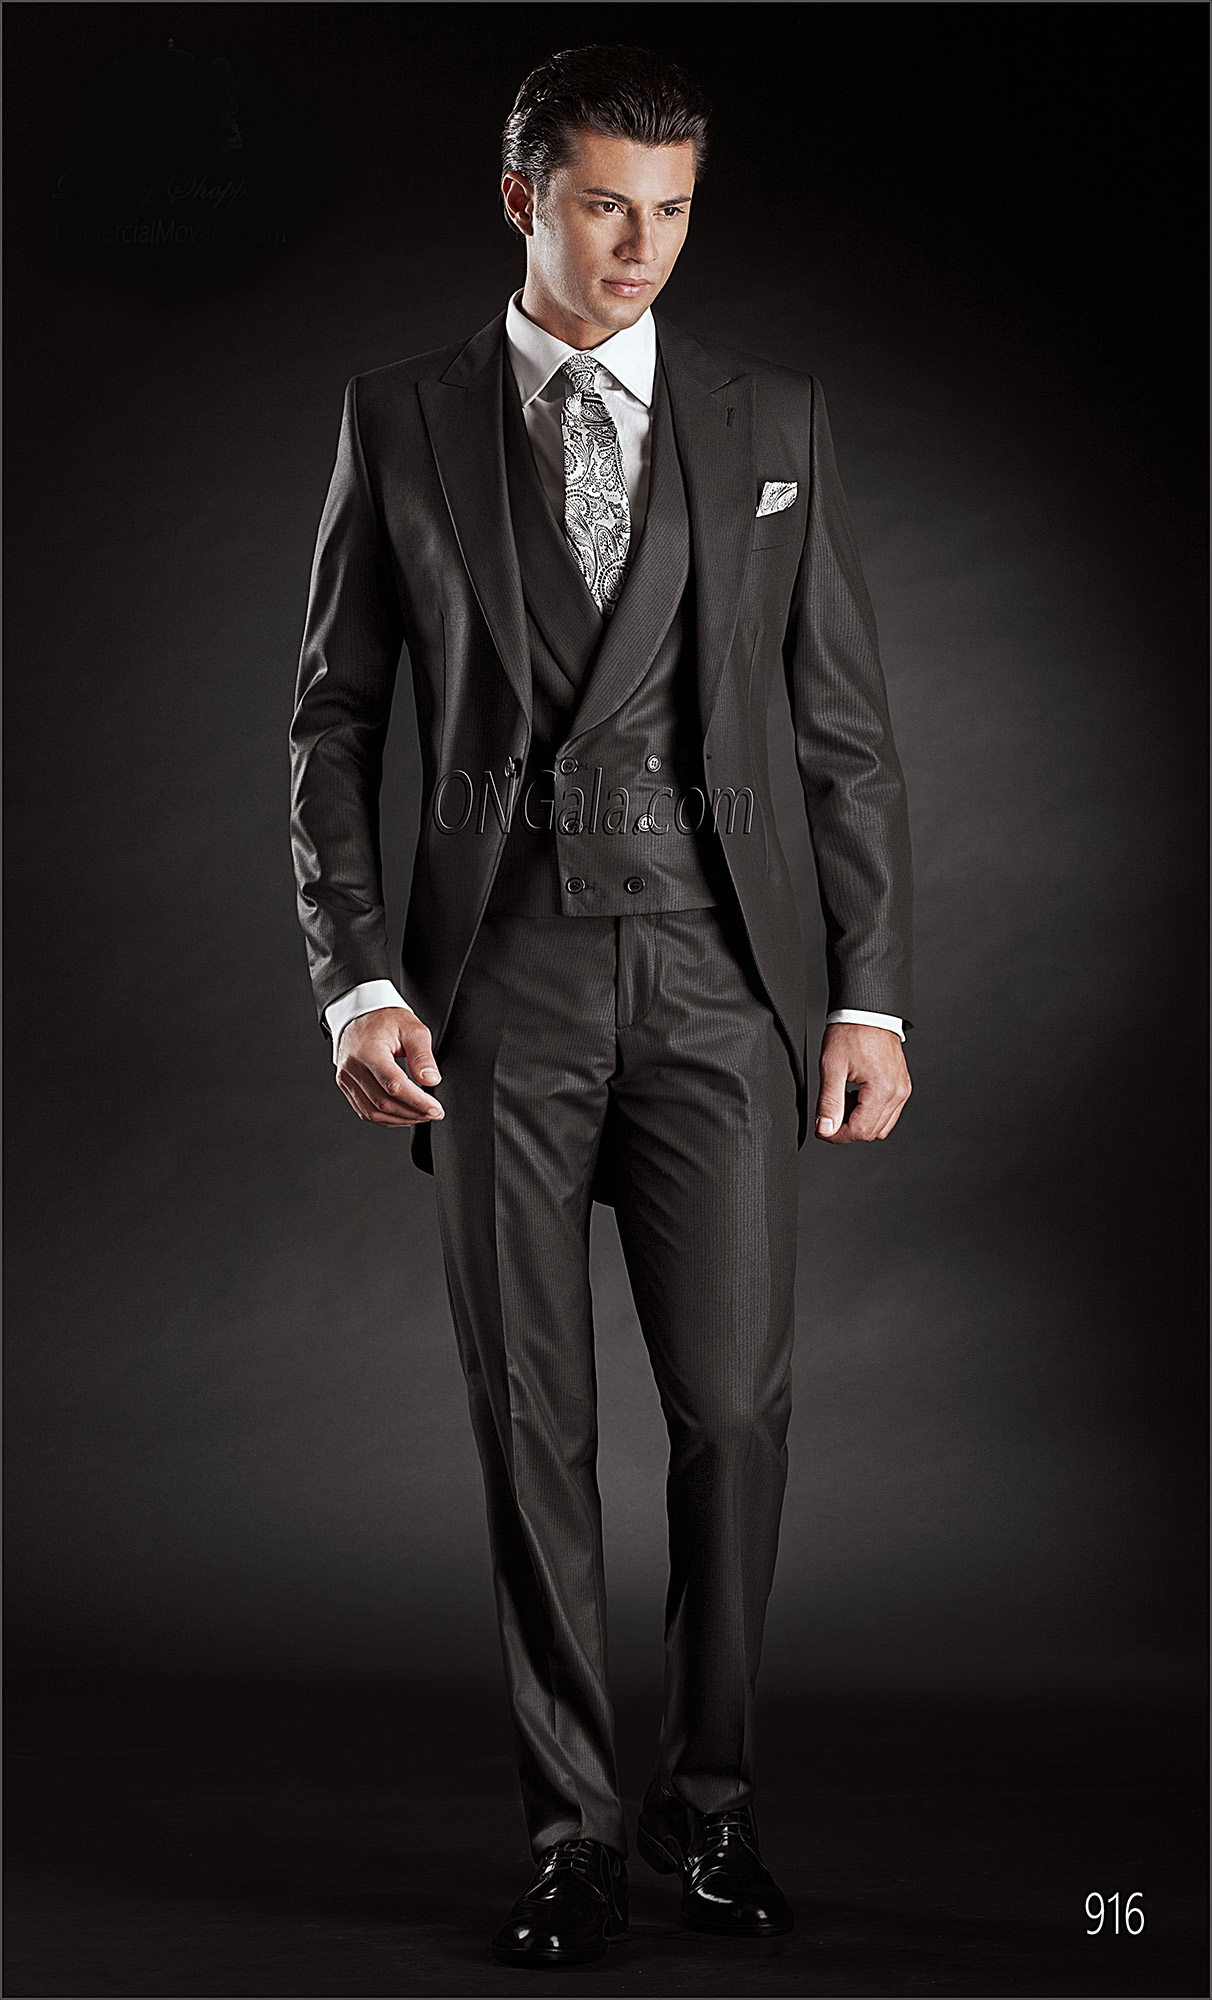 Redingote Short Tailed Suit in Black with Double Breasted Waistcoat